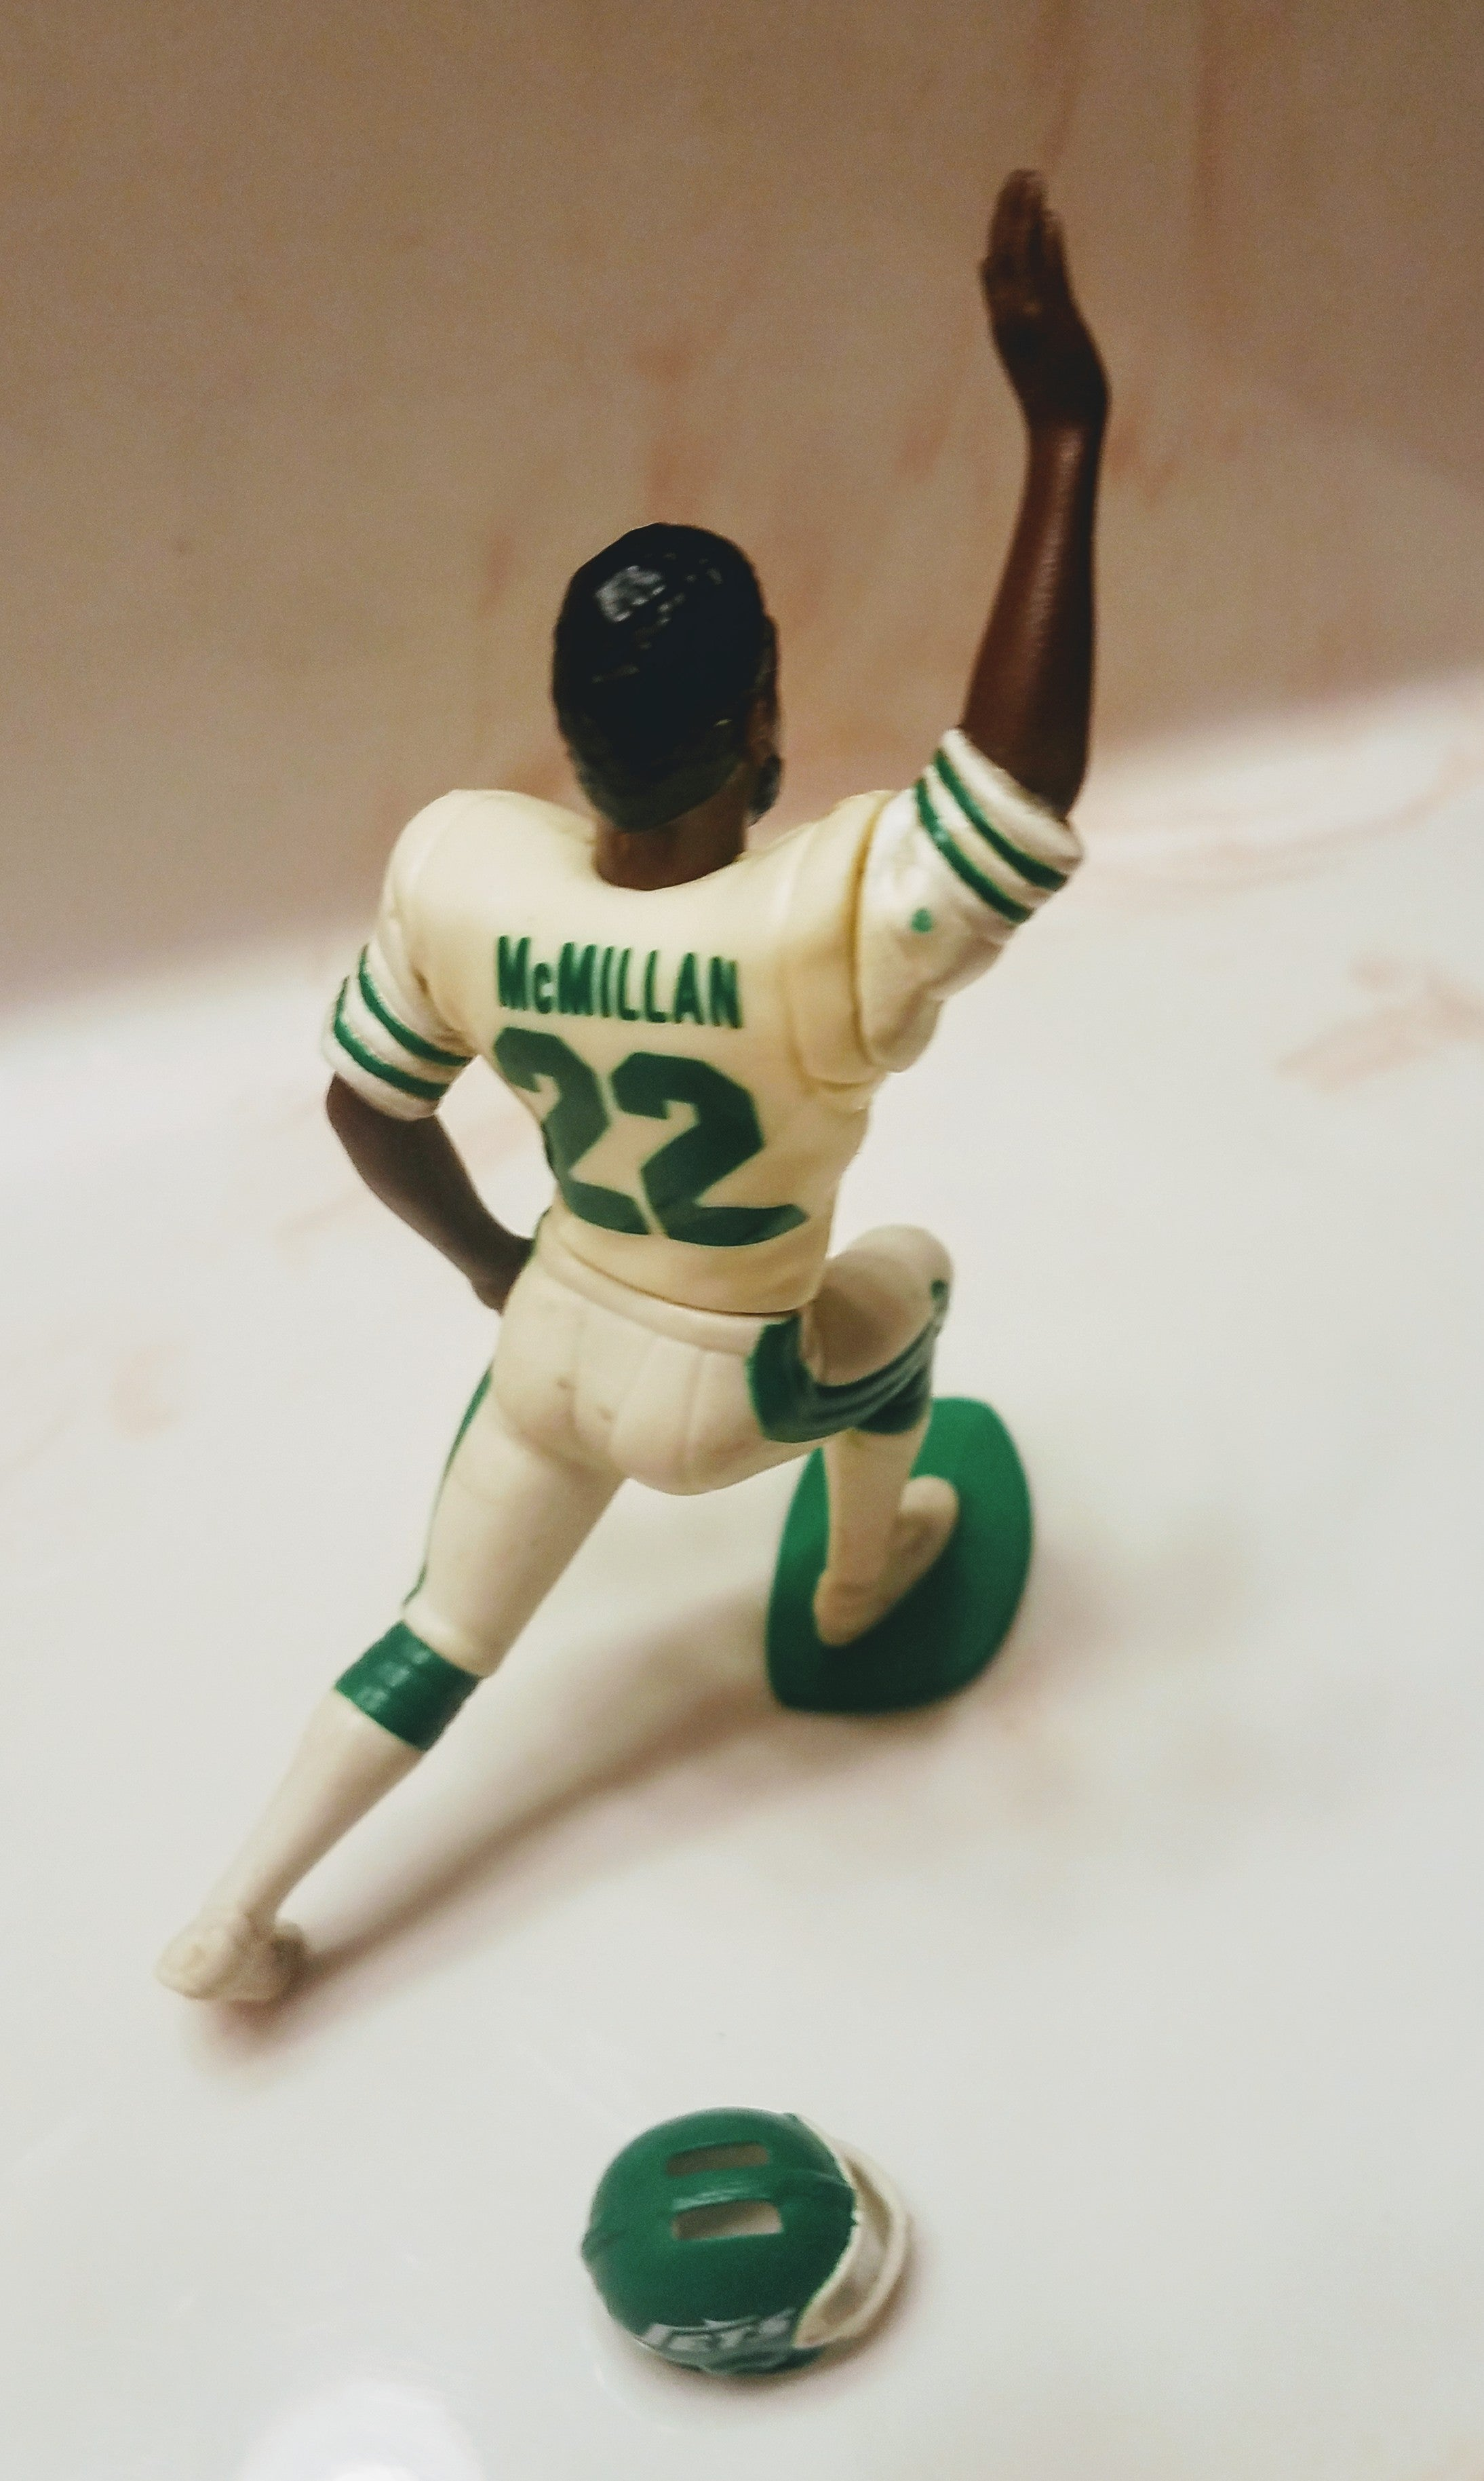 1989 Eric McMillan New York Jets Starting lineup figure  open out of package with helmet NFL